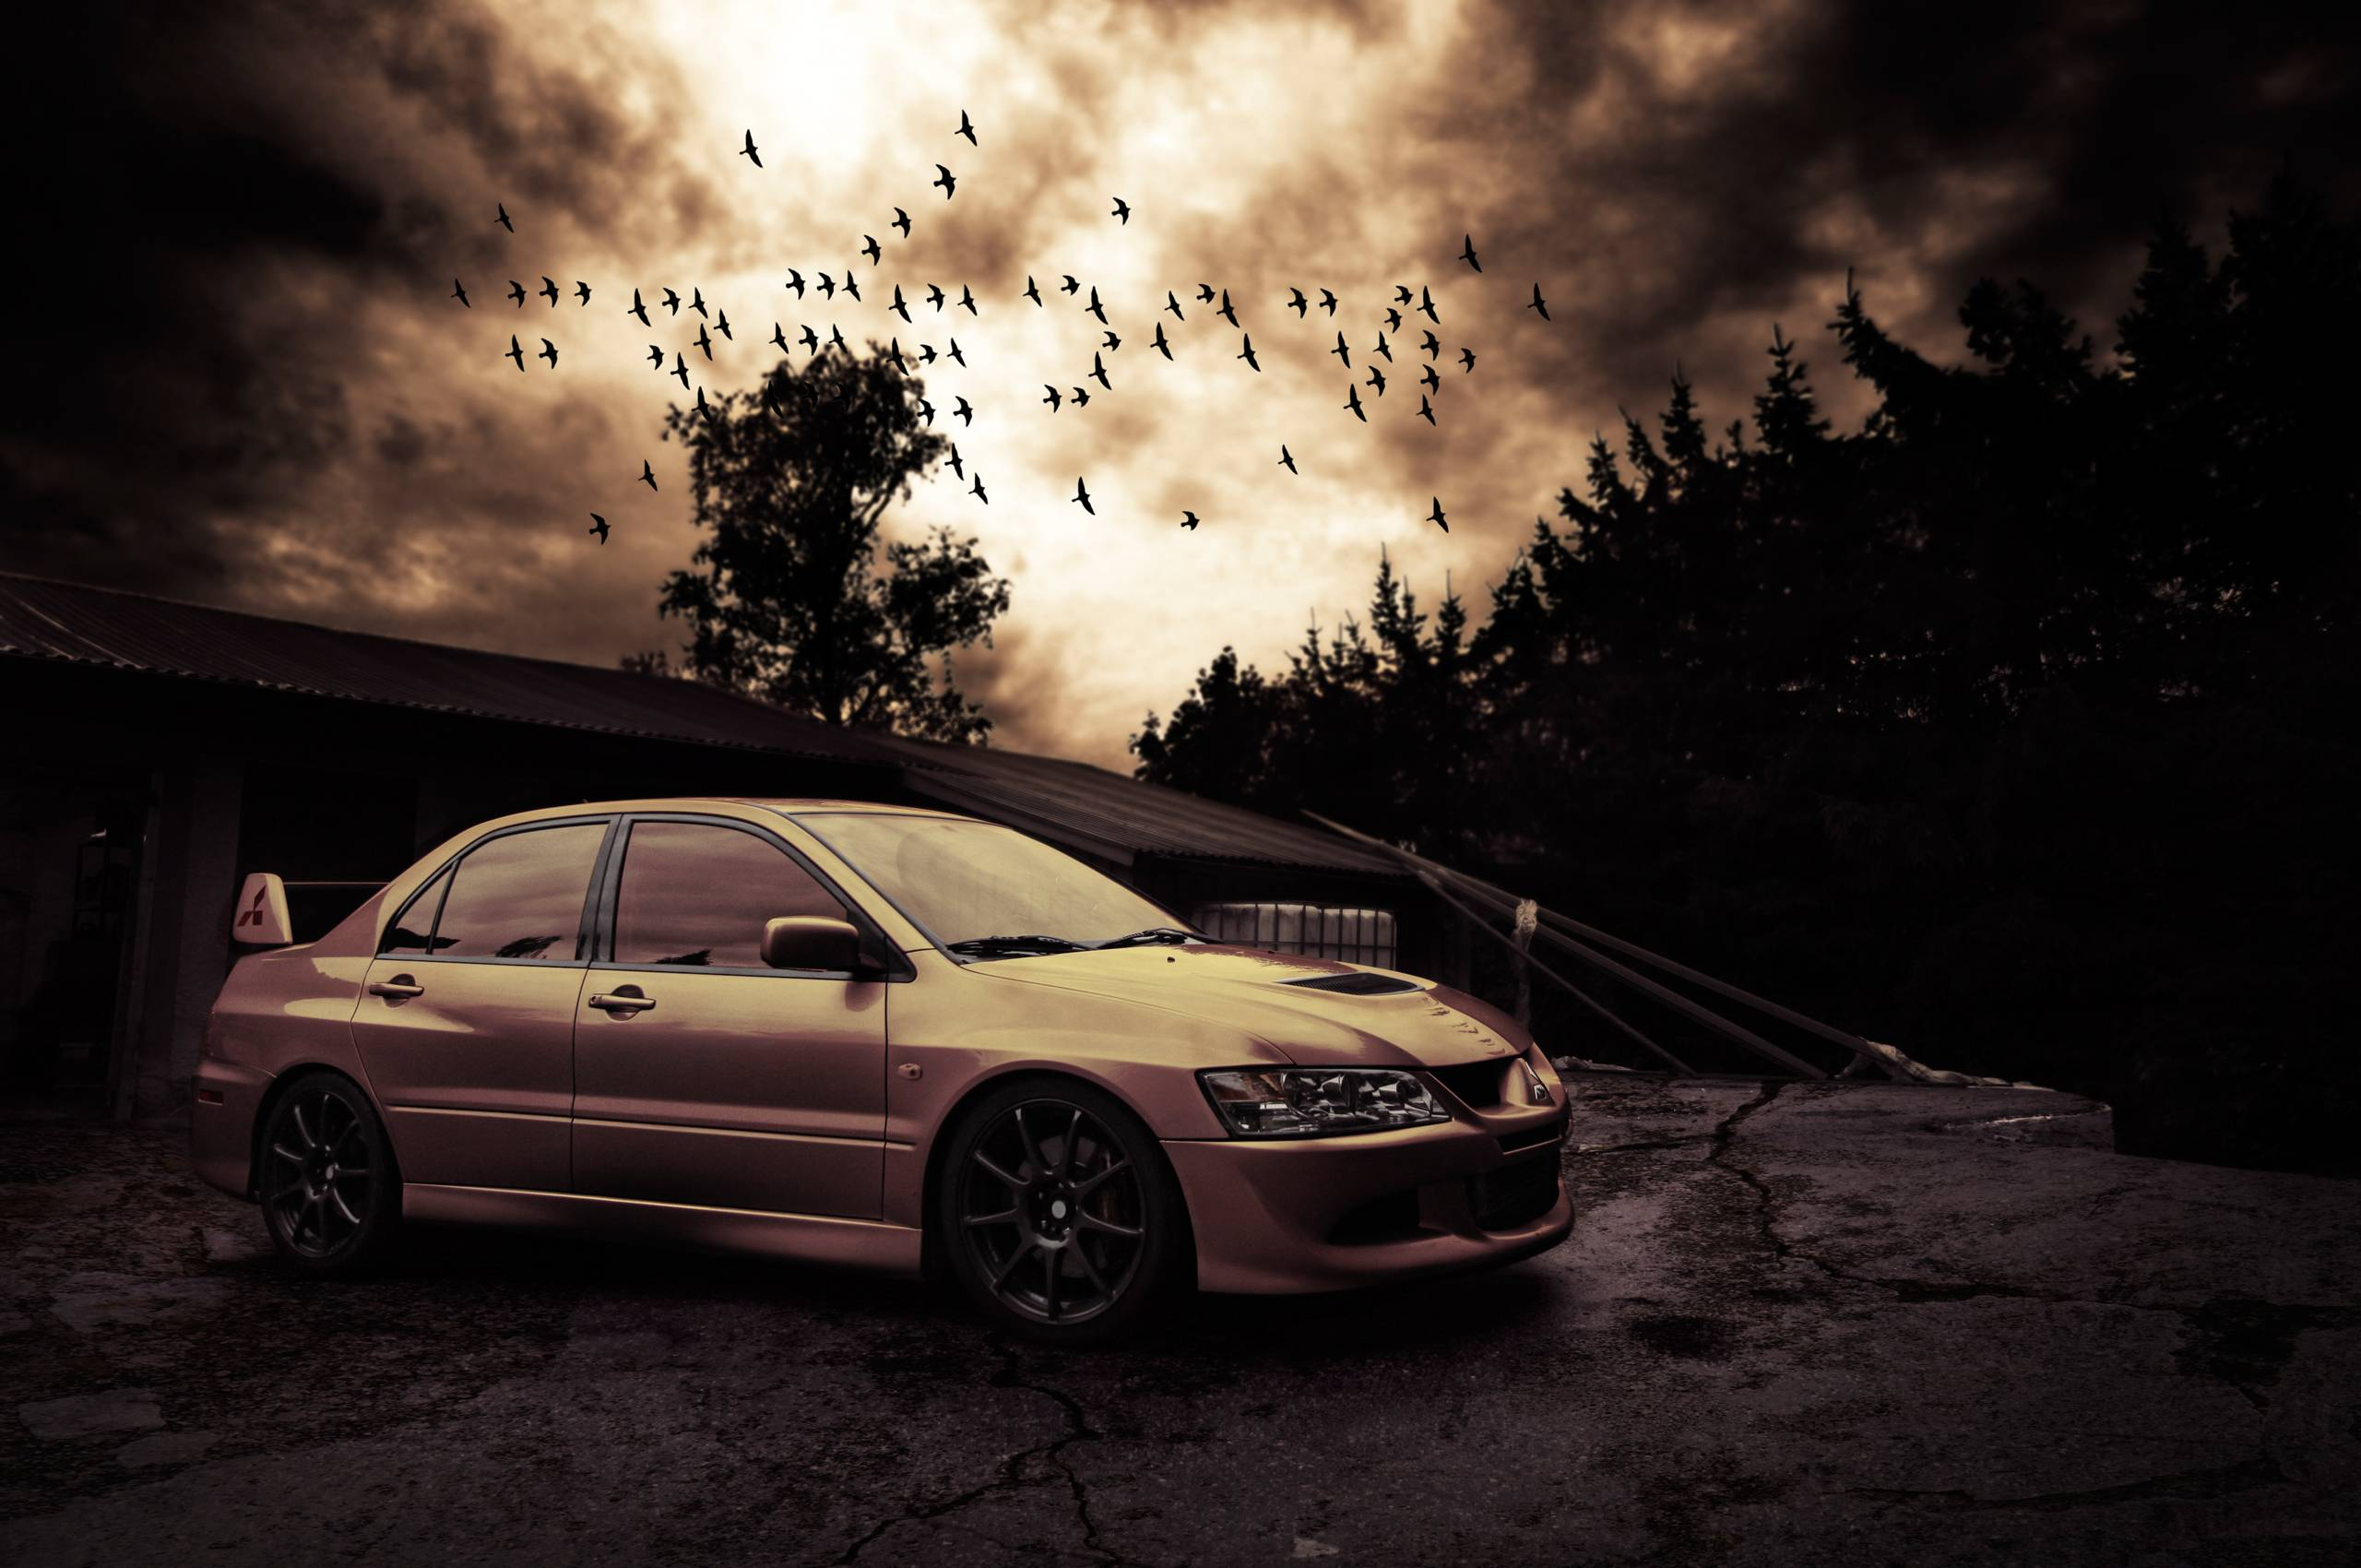 Mitsubishi Evo Wallpapers Top Free Mitsubishi Evo